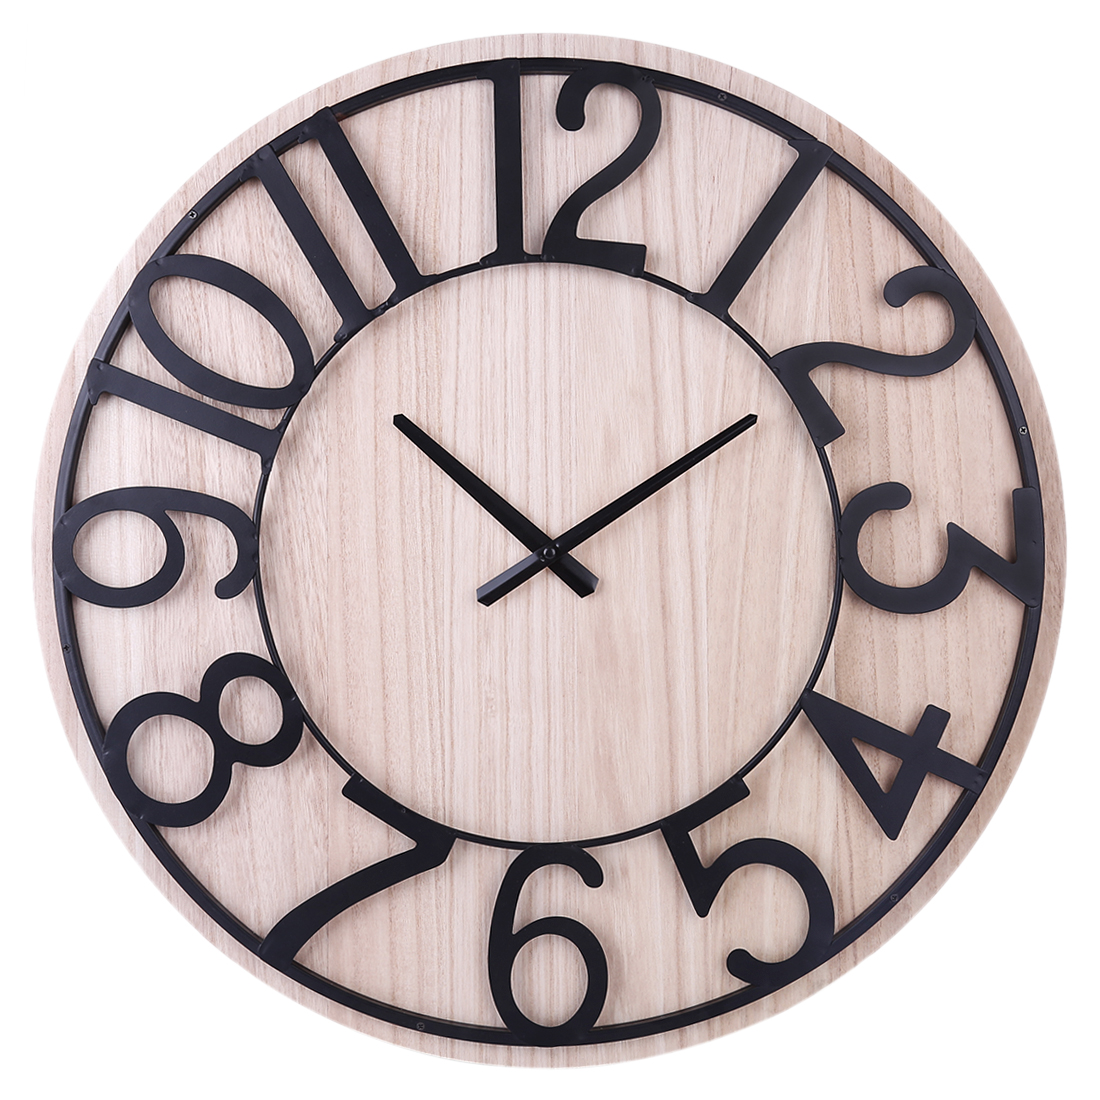 60cm Simple Fashionable Mute Clock Large Wall Clock Retro Vintage Antique New Arrival Hanging Clock Home Decoration